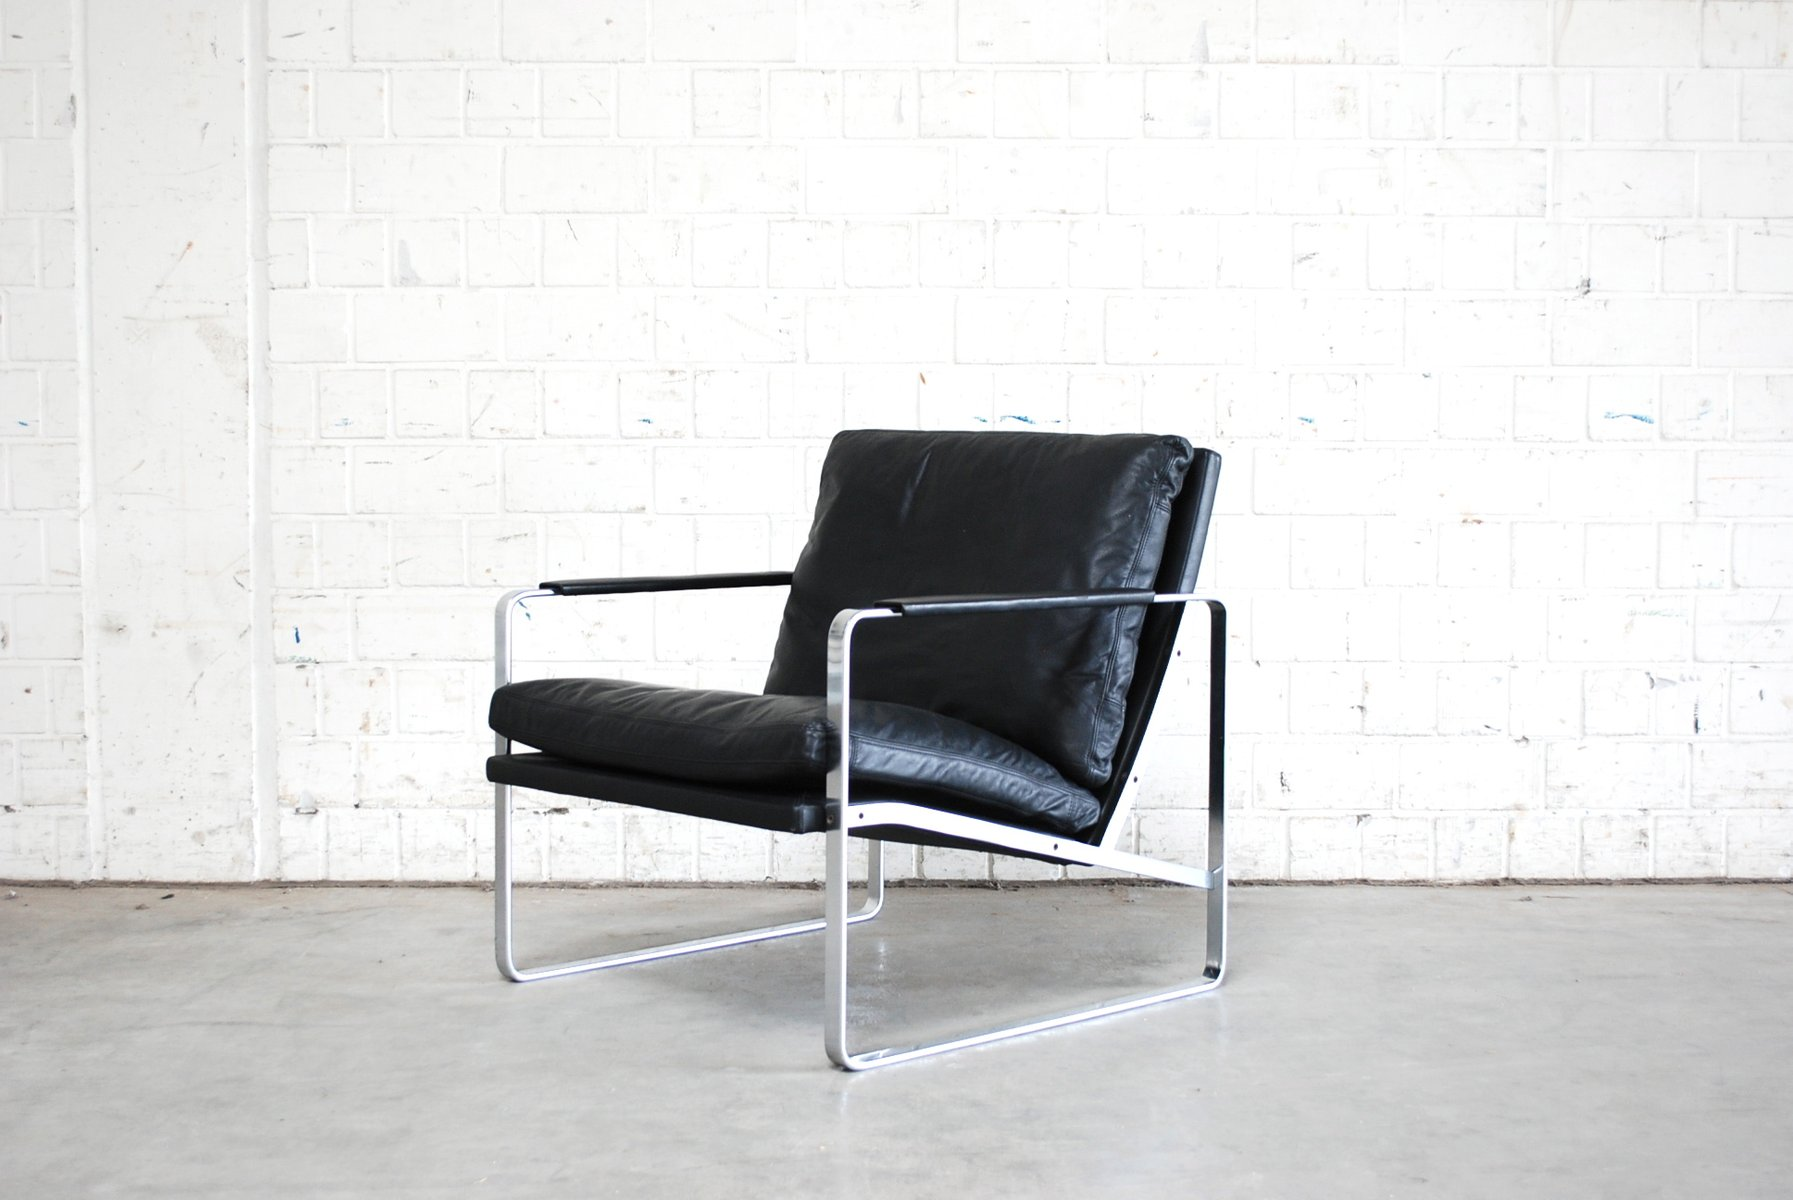 model 710 10 easy chair by preben fabricius for walter knoll for sale at pamono. Black Bedroom Furniture Sets. Home Design Ideas